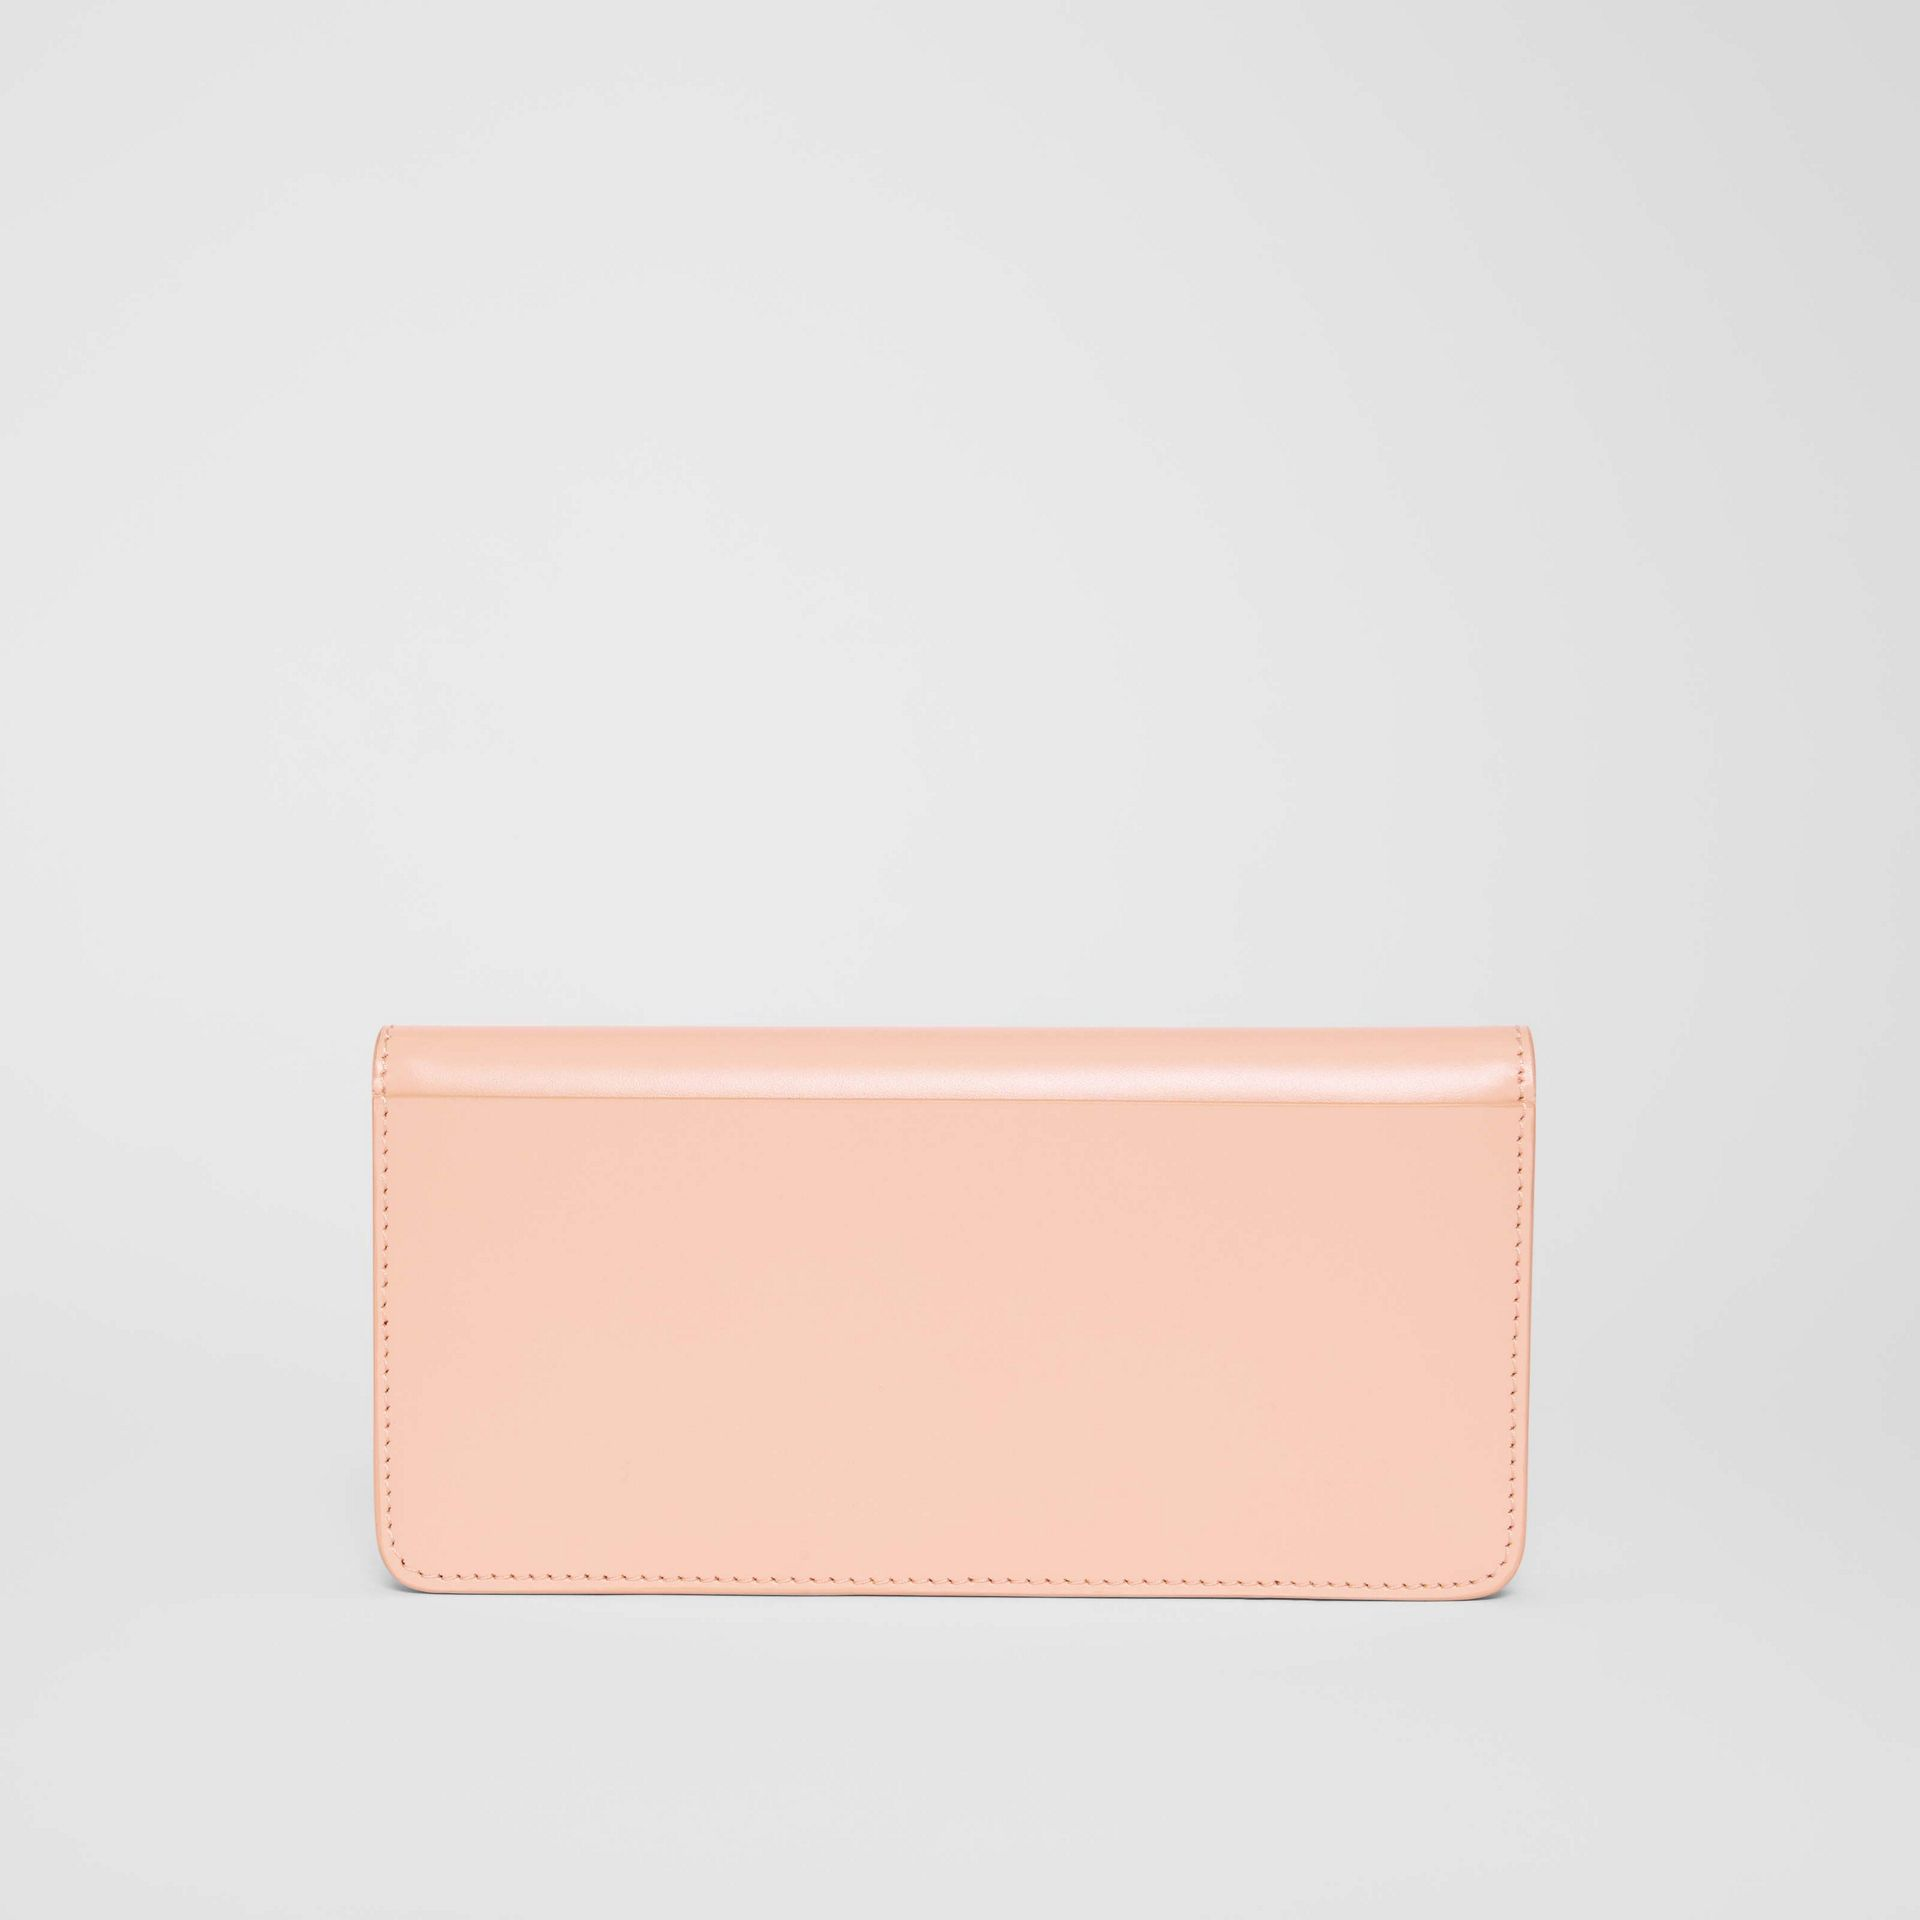 Horseferry Embossed Leather Continental Wallet in Blush Pink - Women | Burberry United Kingdom - gallery image 5